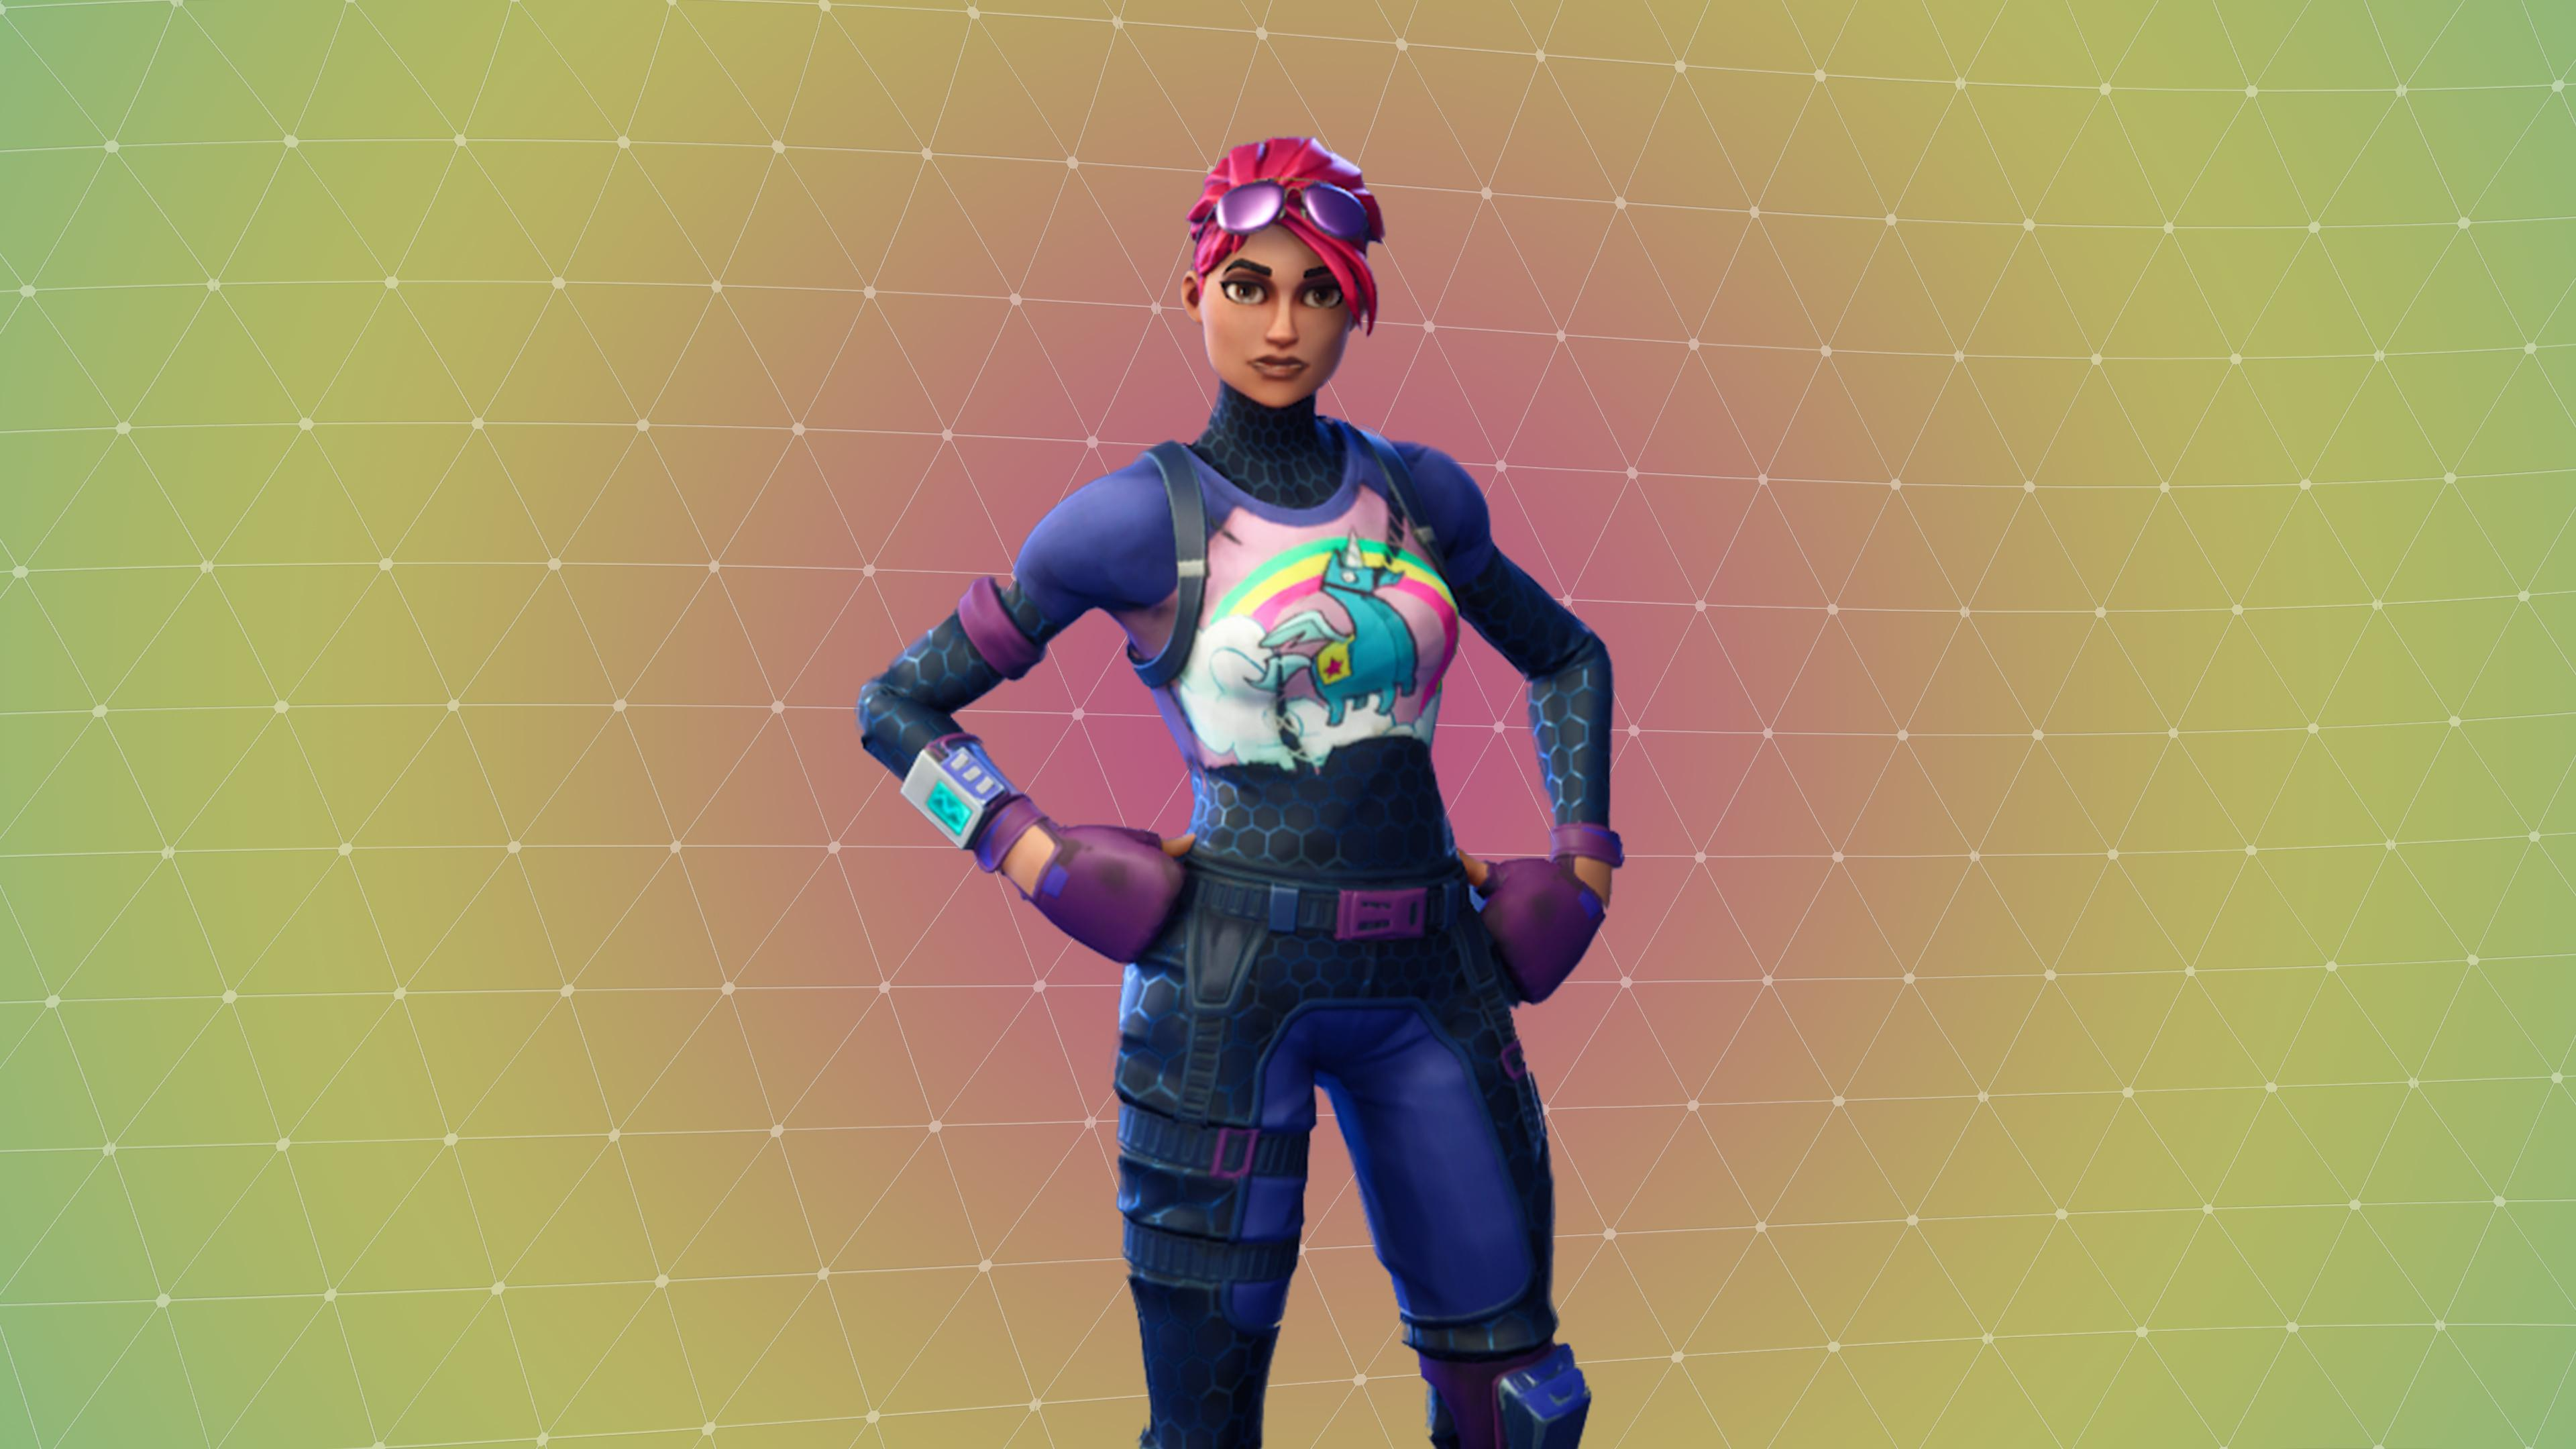 The Bright Bomber Fortnite Wallpapers   Top The Bright Bomber 3840x2160